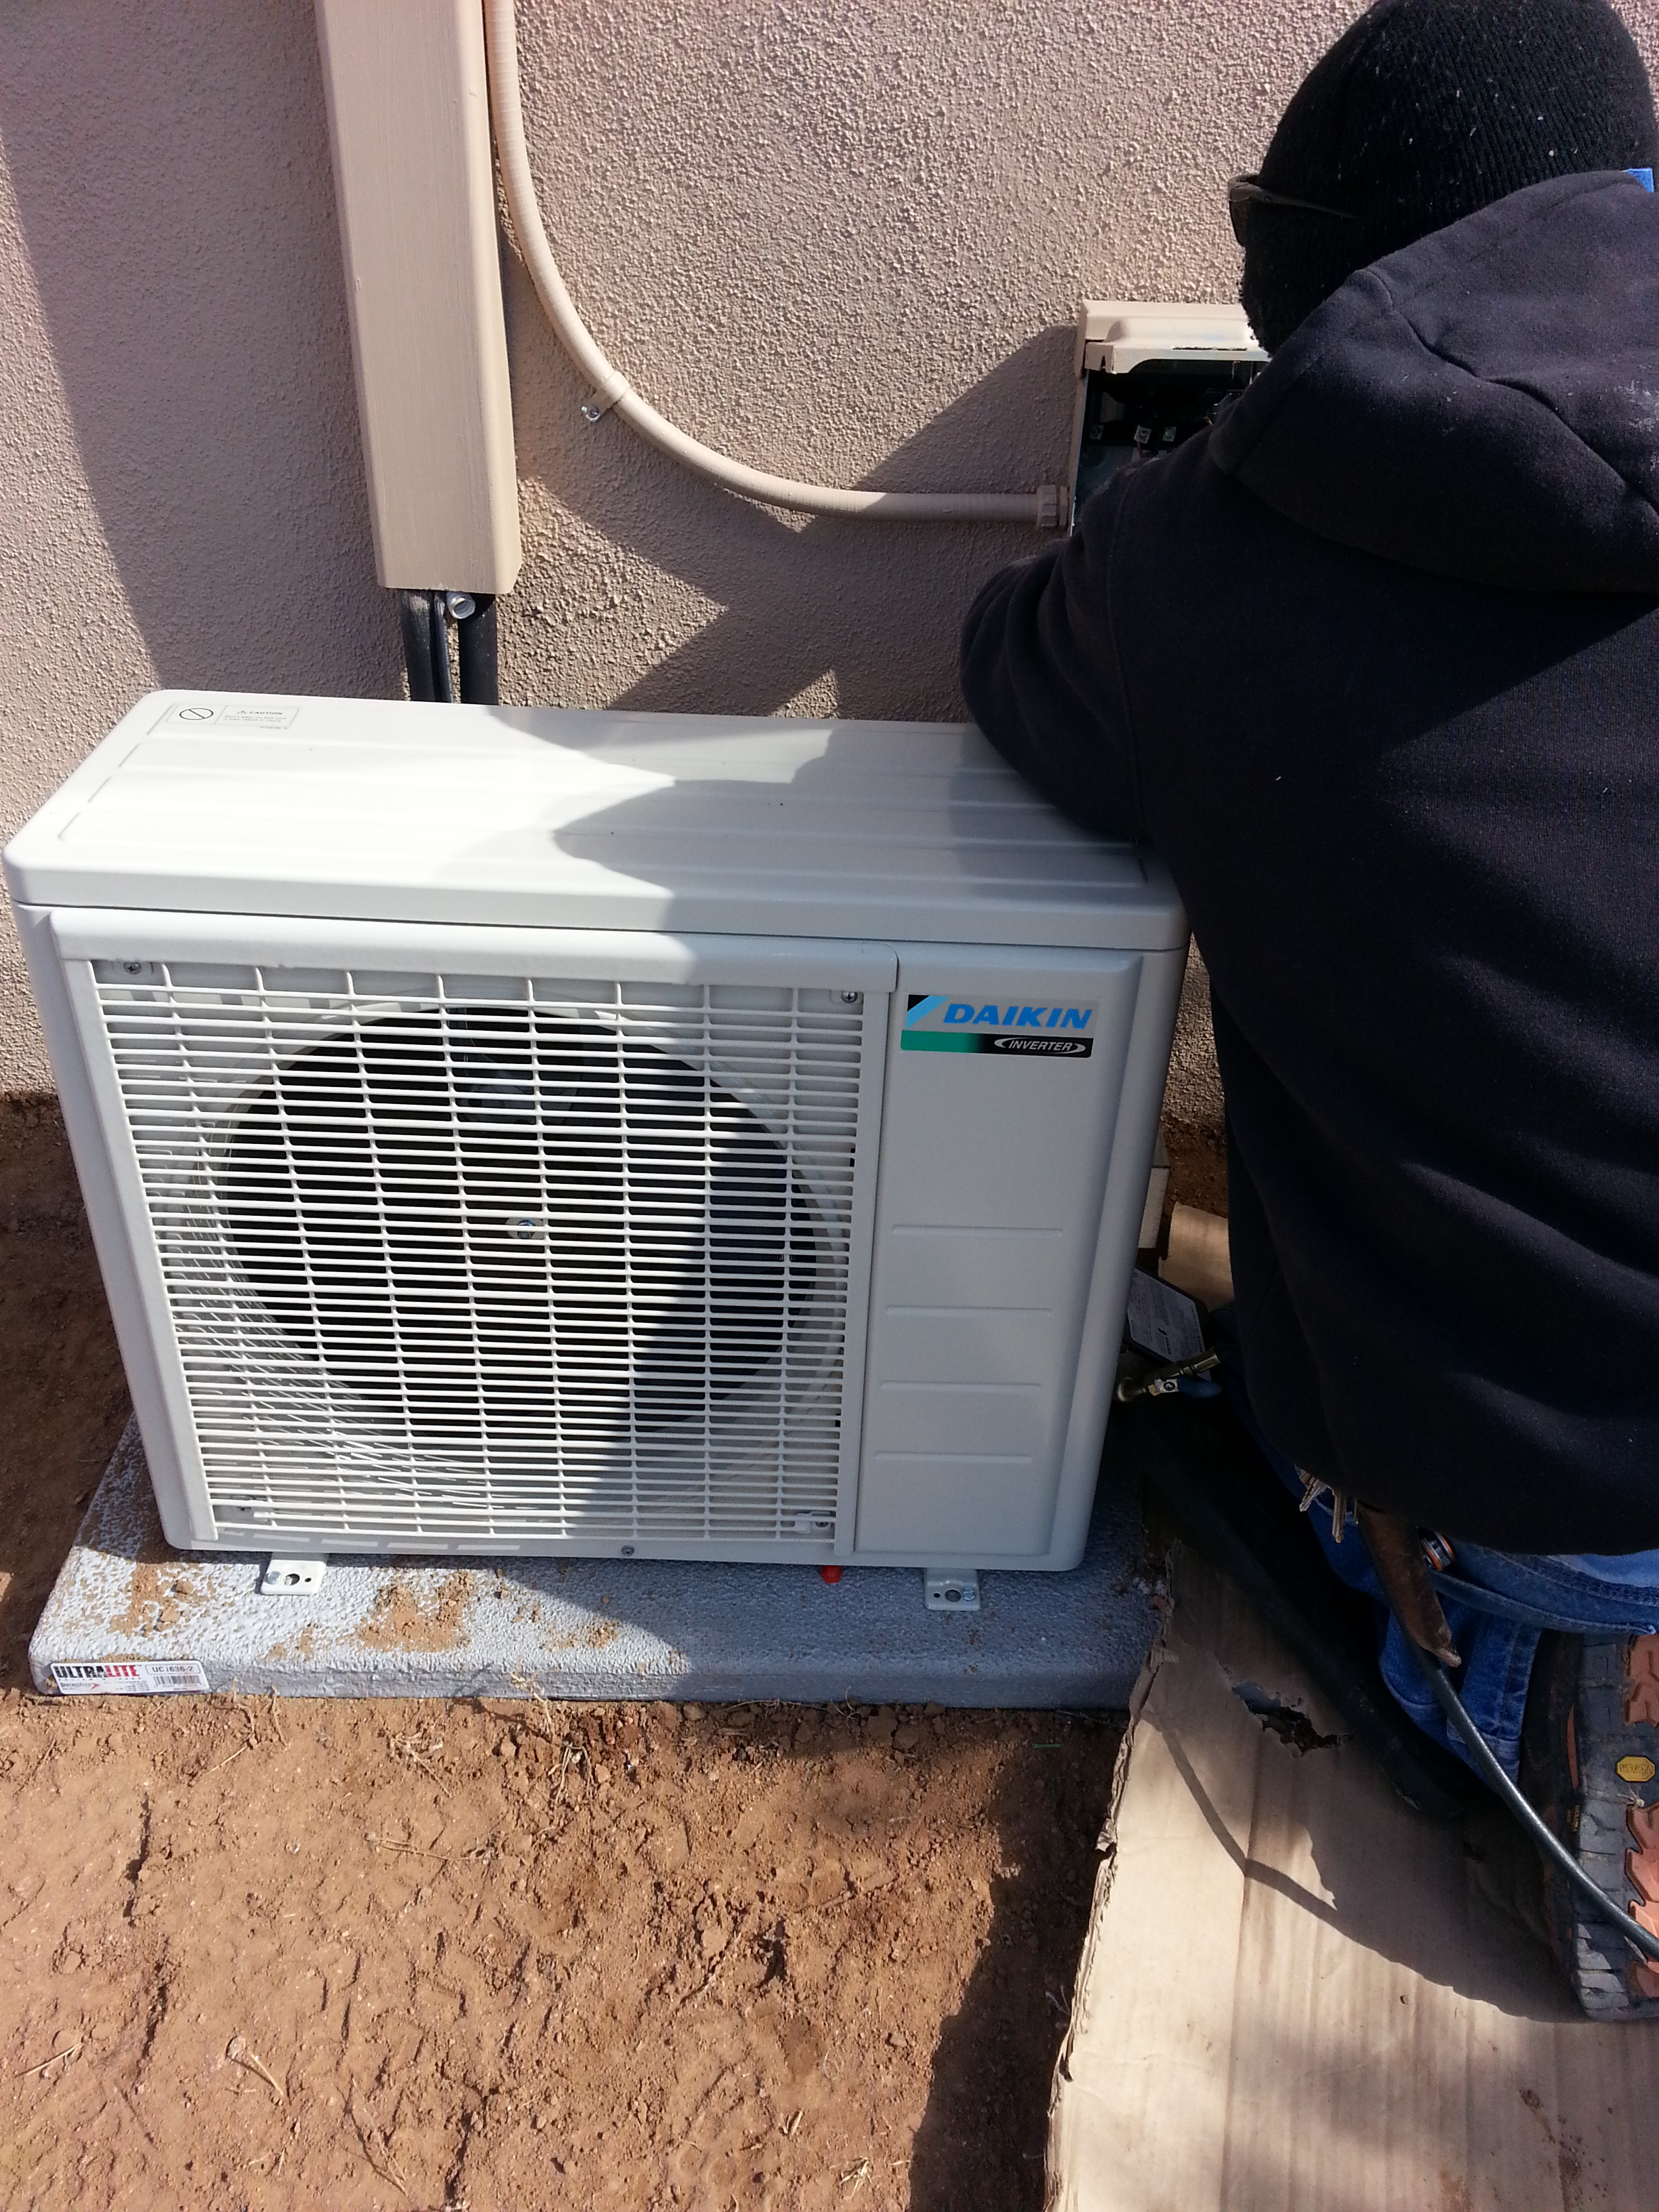 3 Reasons To Choose A Daikin Ductless Air Conditioning